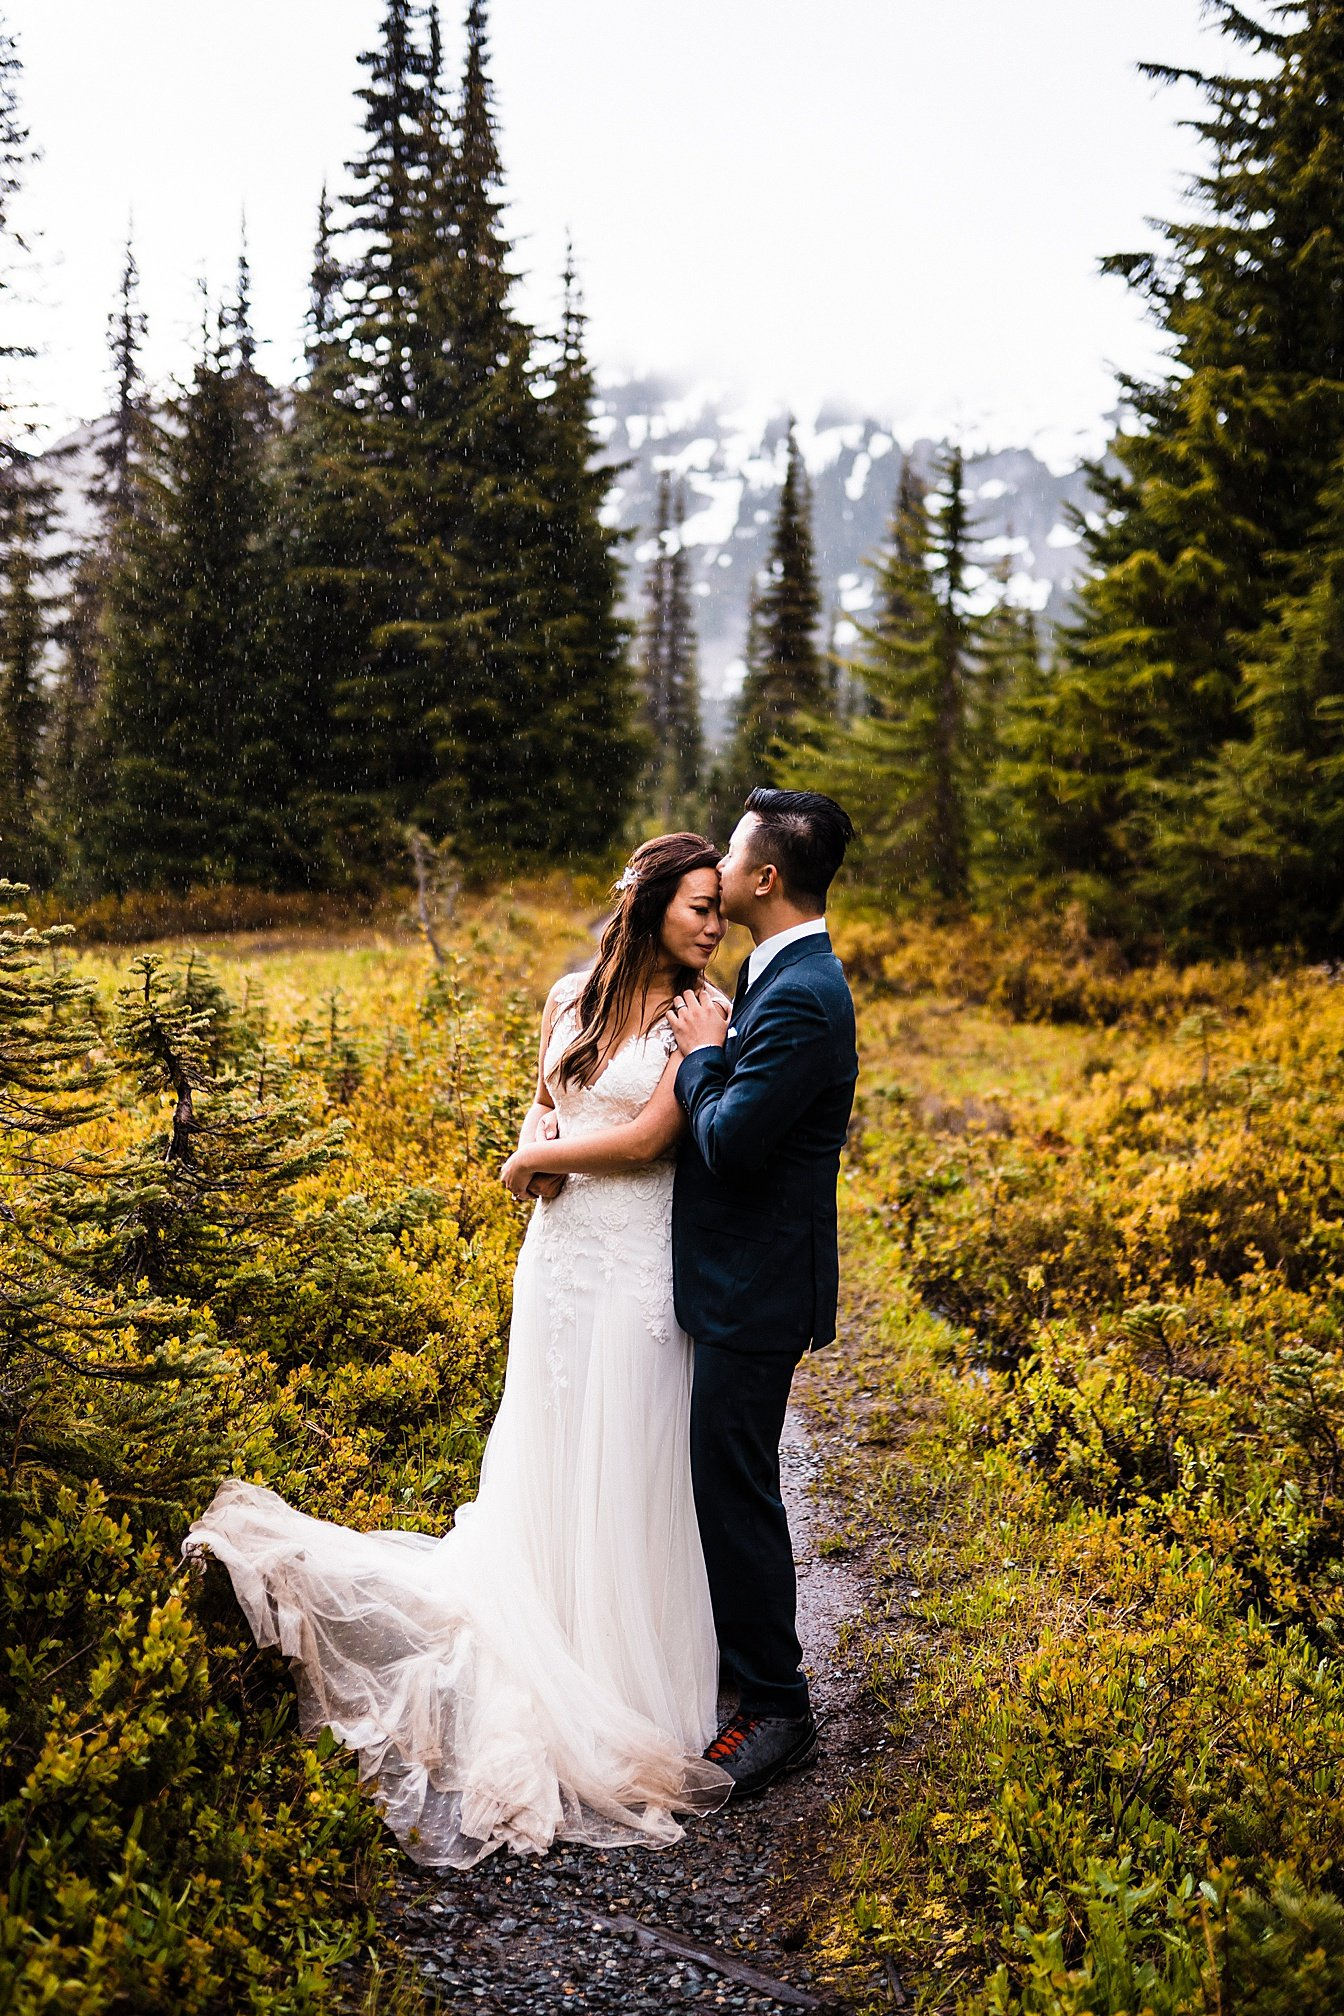 misty-mountain-elopement-mount-rainier_0026.jpg